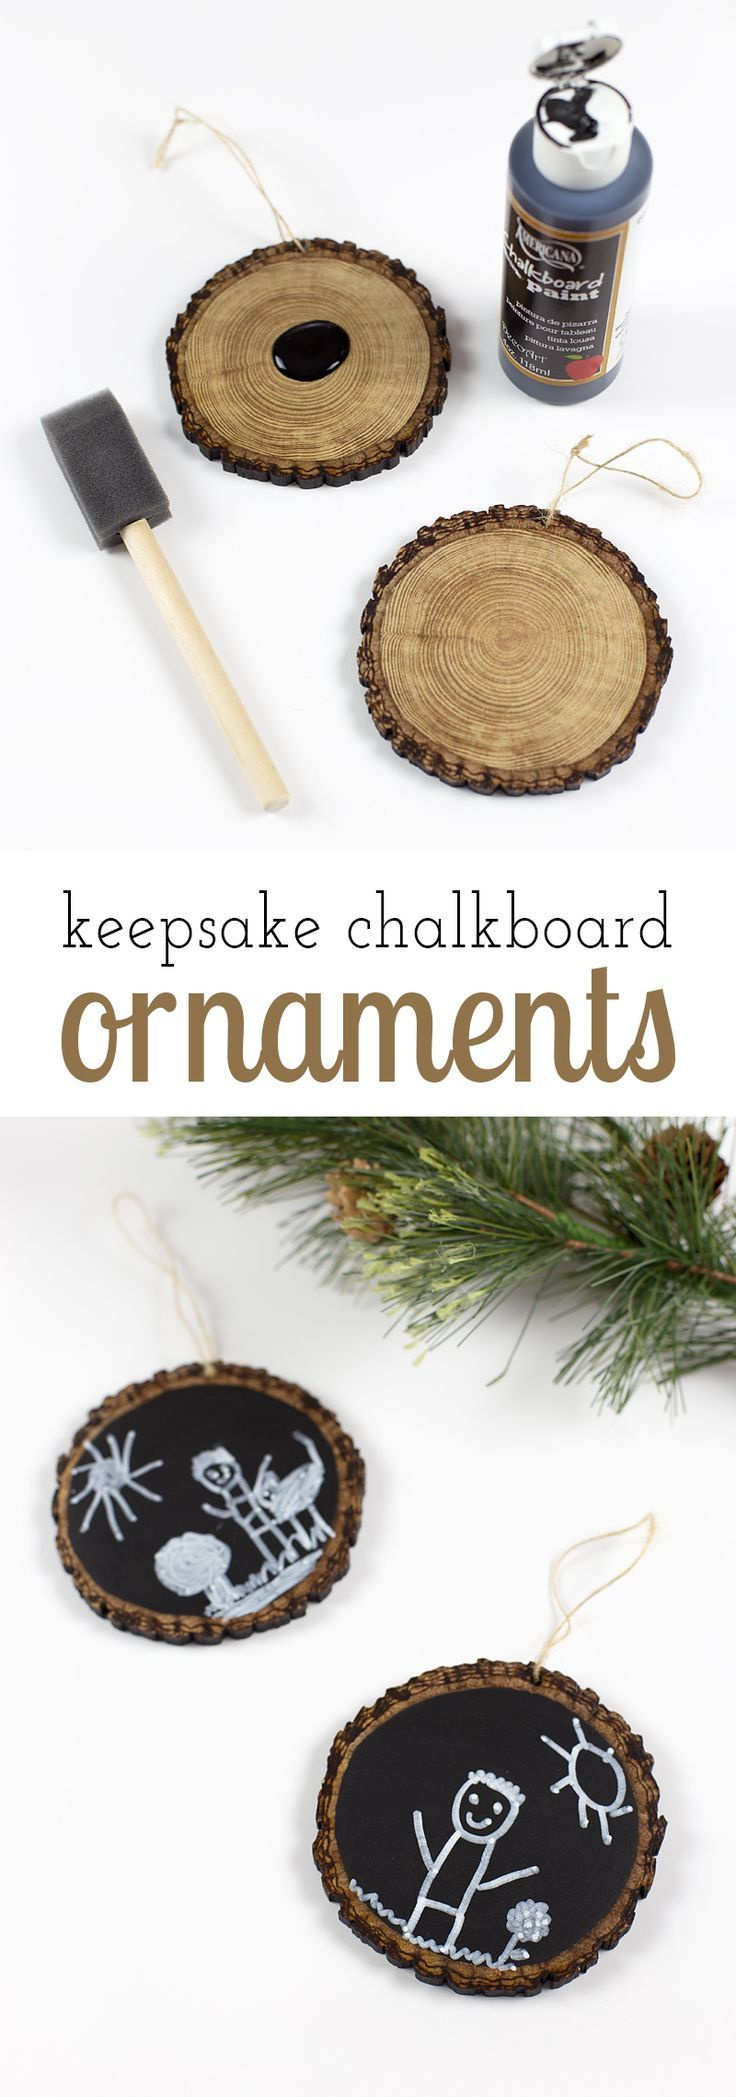 Easy Keepsake Chalkboard Ornaments Christmas Crafts For KidsGreat